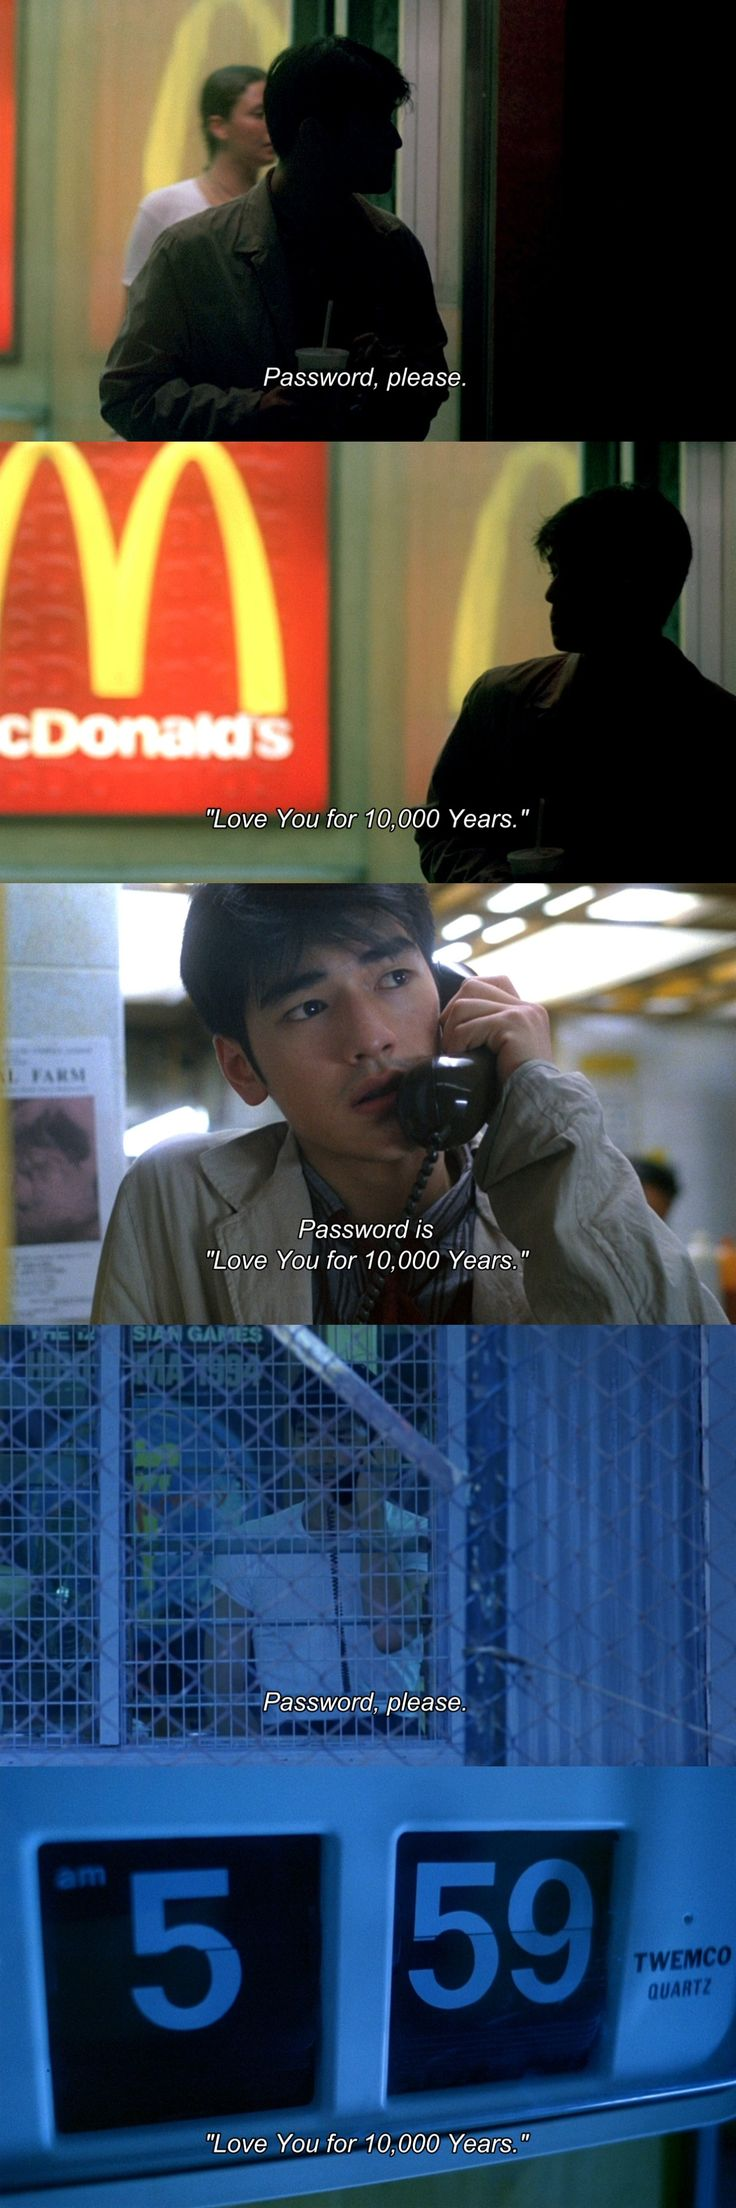 lovelorn passwords. (Chungking express)